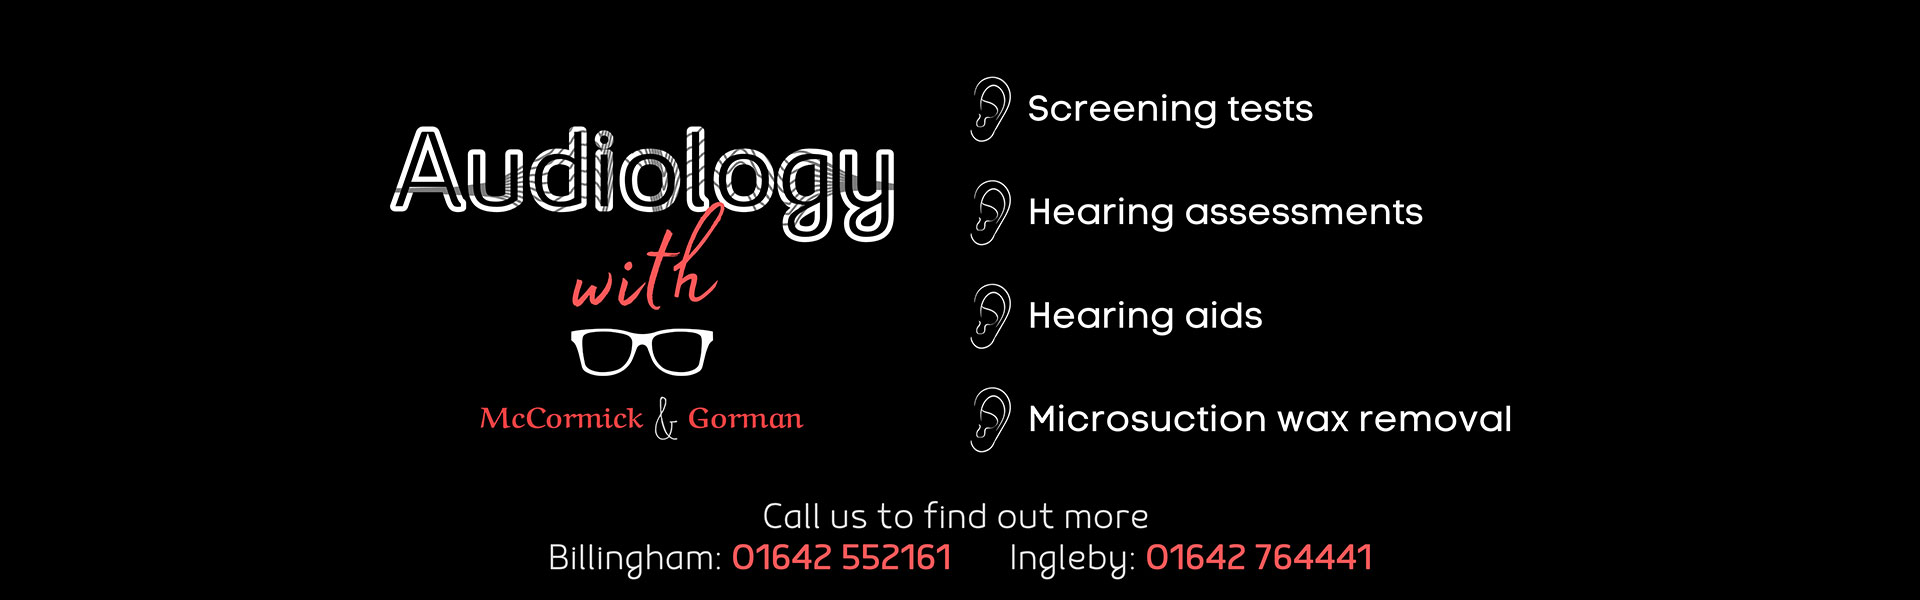 audiology banner explained